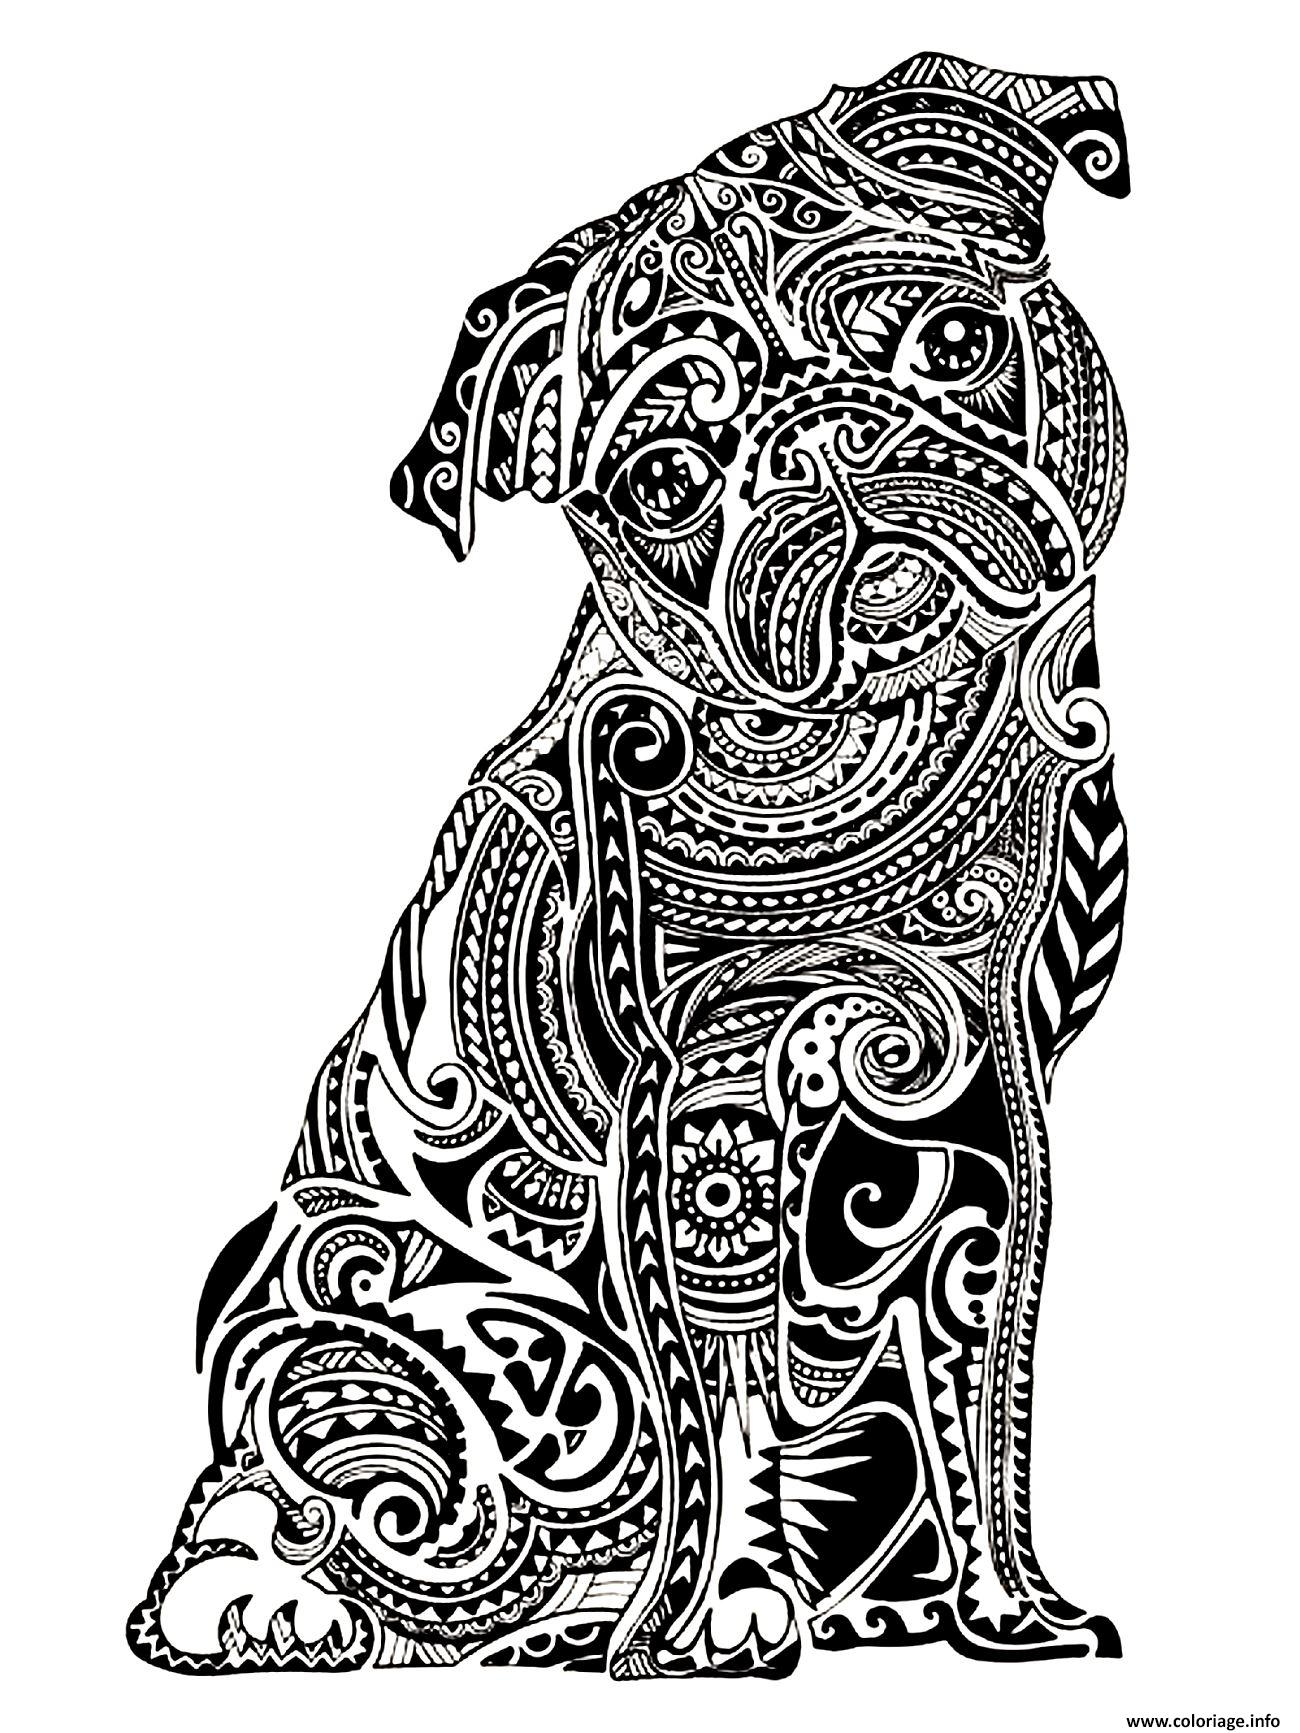 Coloriage adulte difficile petit buldog dessin - Coloriage adulte difficile ...